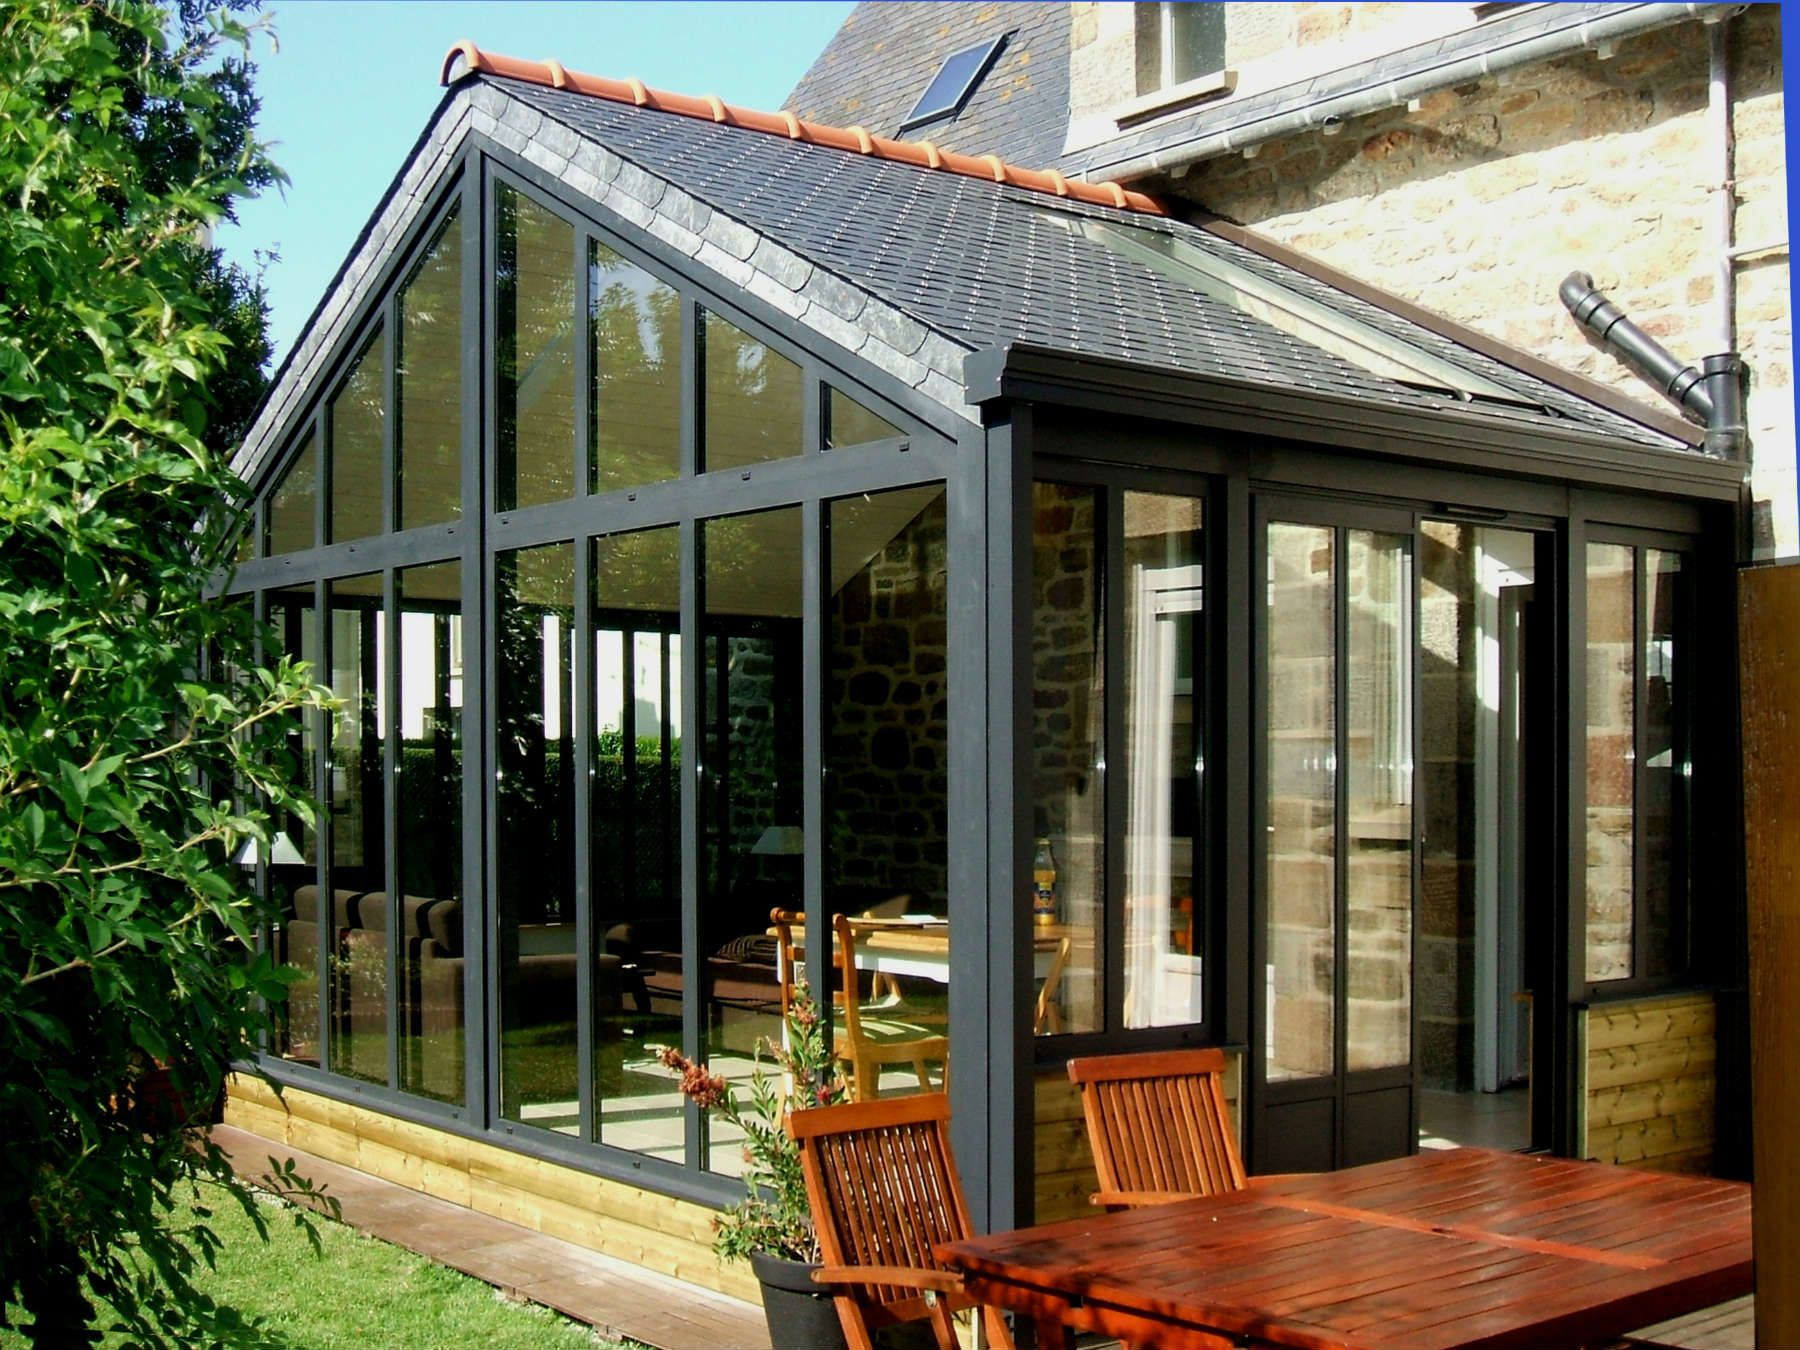 Extension toiture double pente2 greenhouse pinterest for Extension toiture